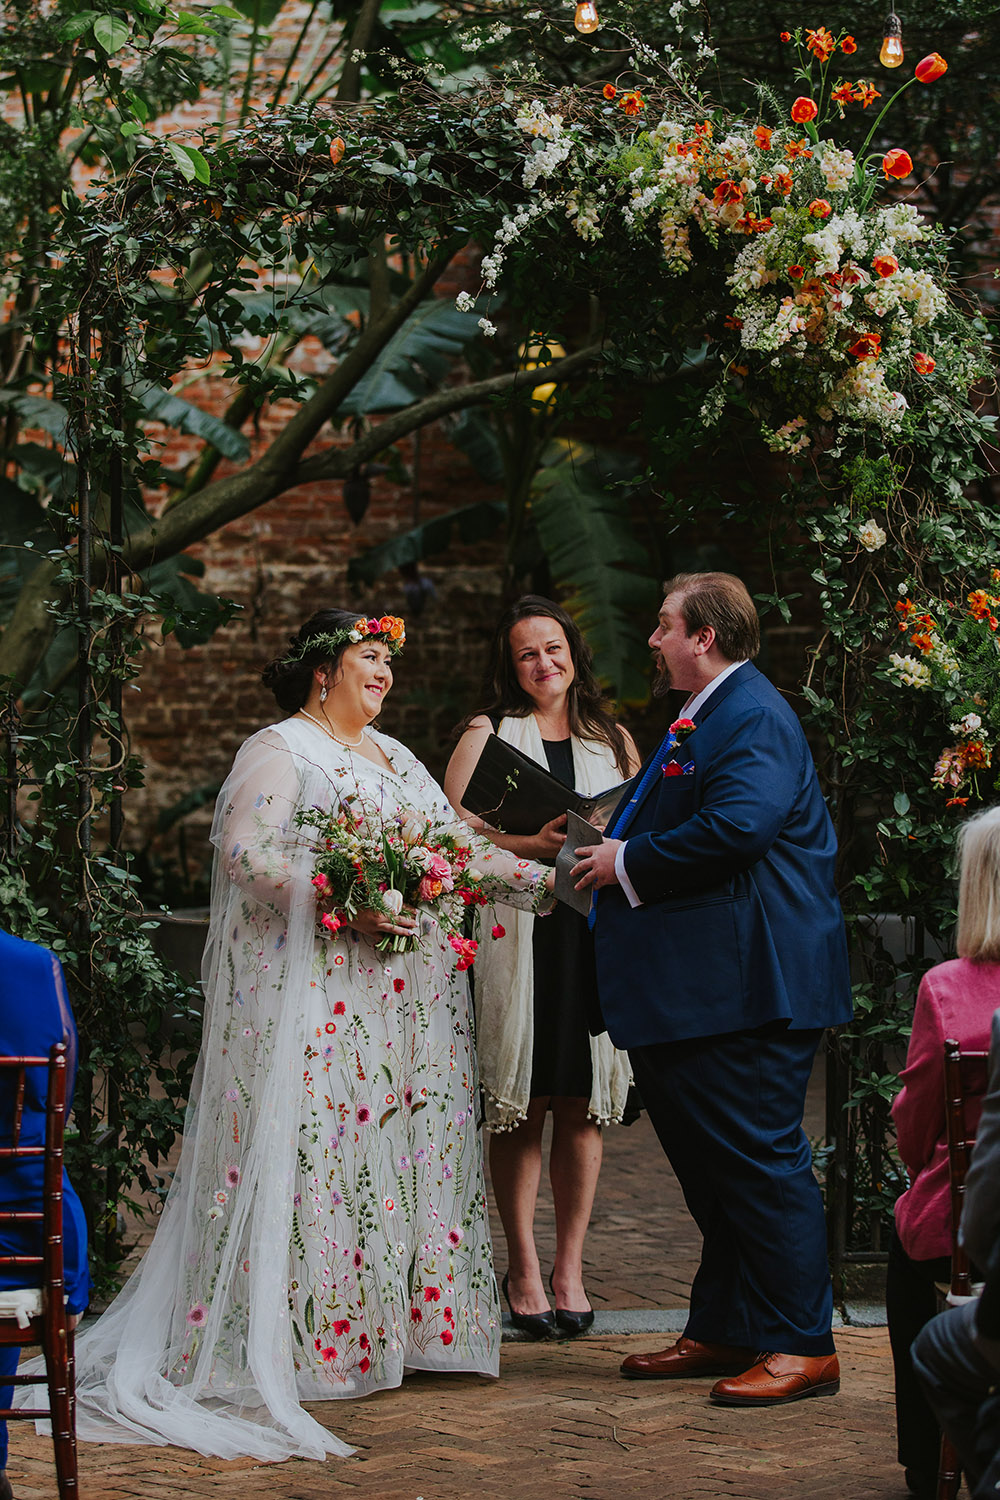 Friend of the couple, Vera Lester, served as officiant for their nuptials. Photo: Ashley Biltz